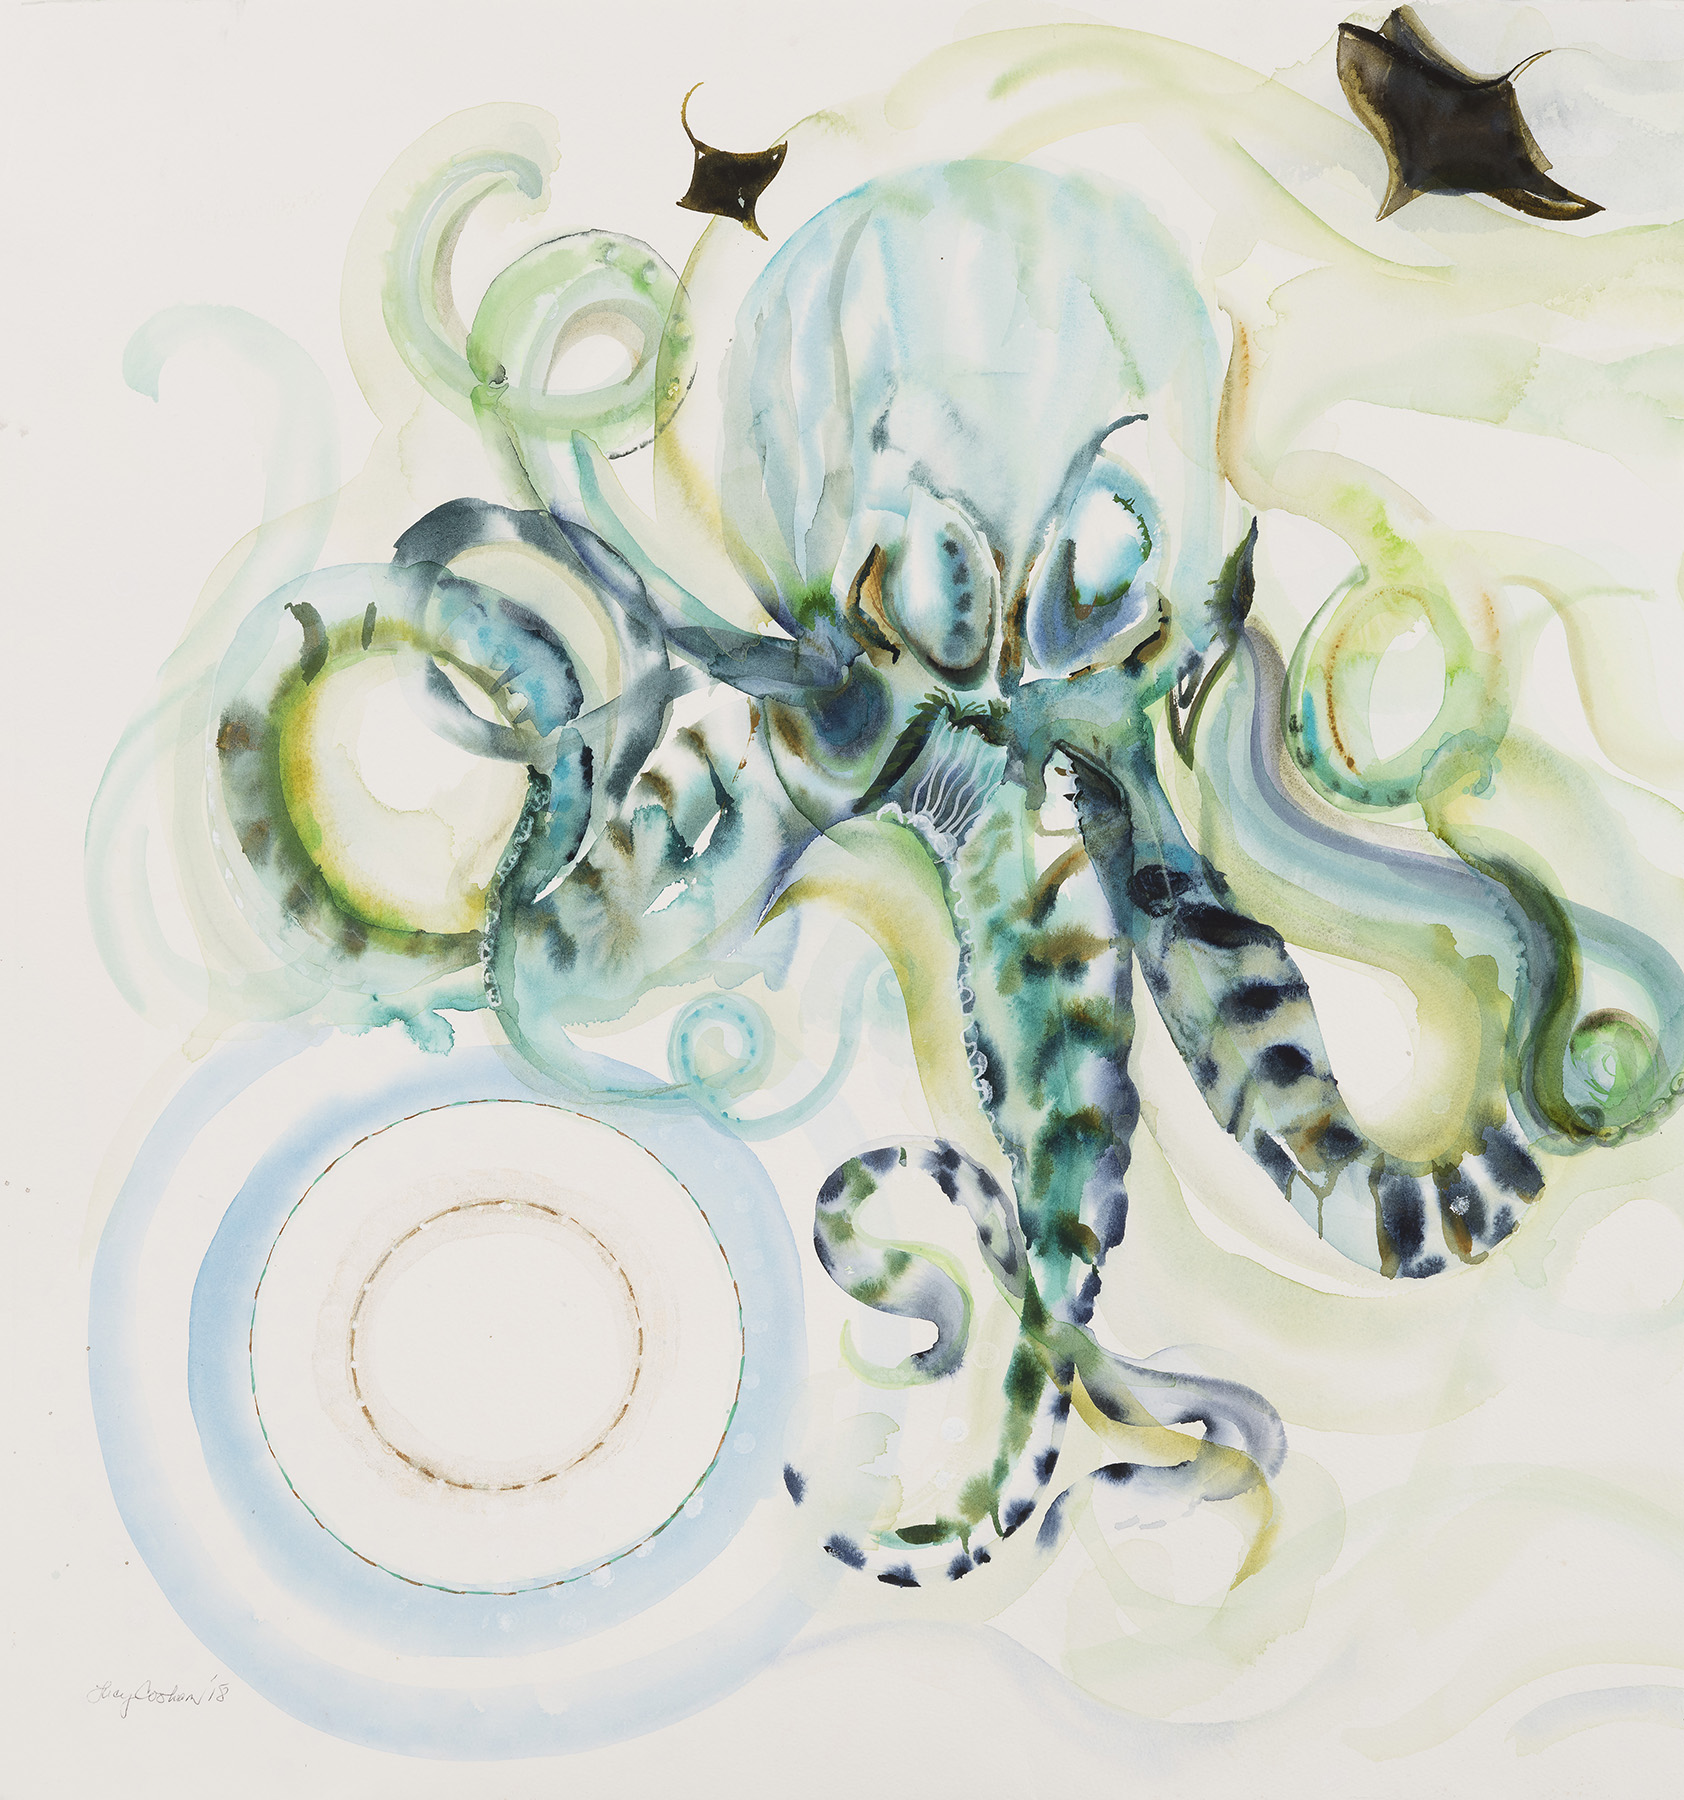 Octo in Nueve or Do You Want to Know a Secret, 2018, Watercolor and gouache on paper, 40 x 38 in.